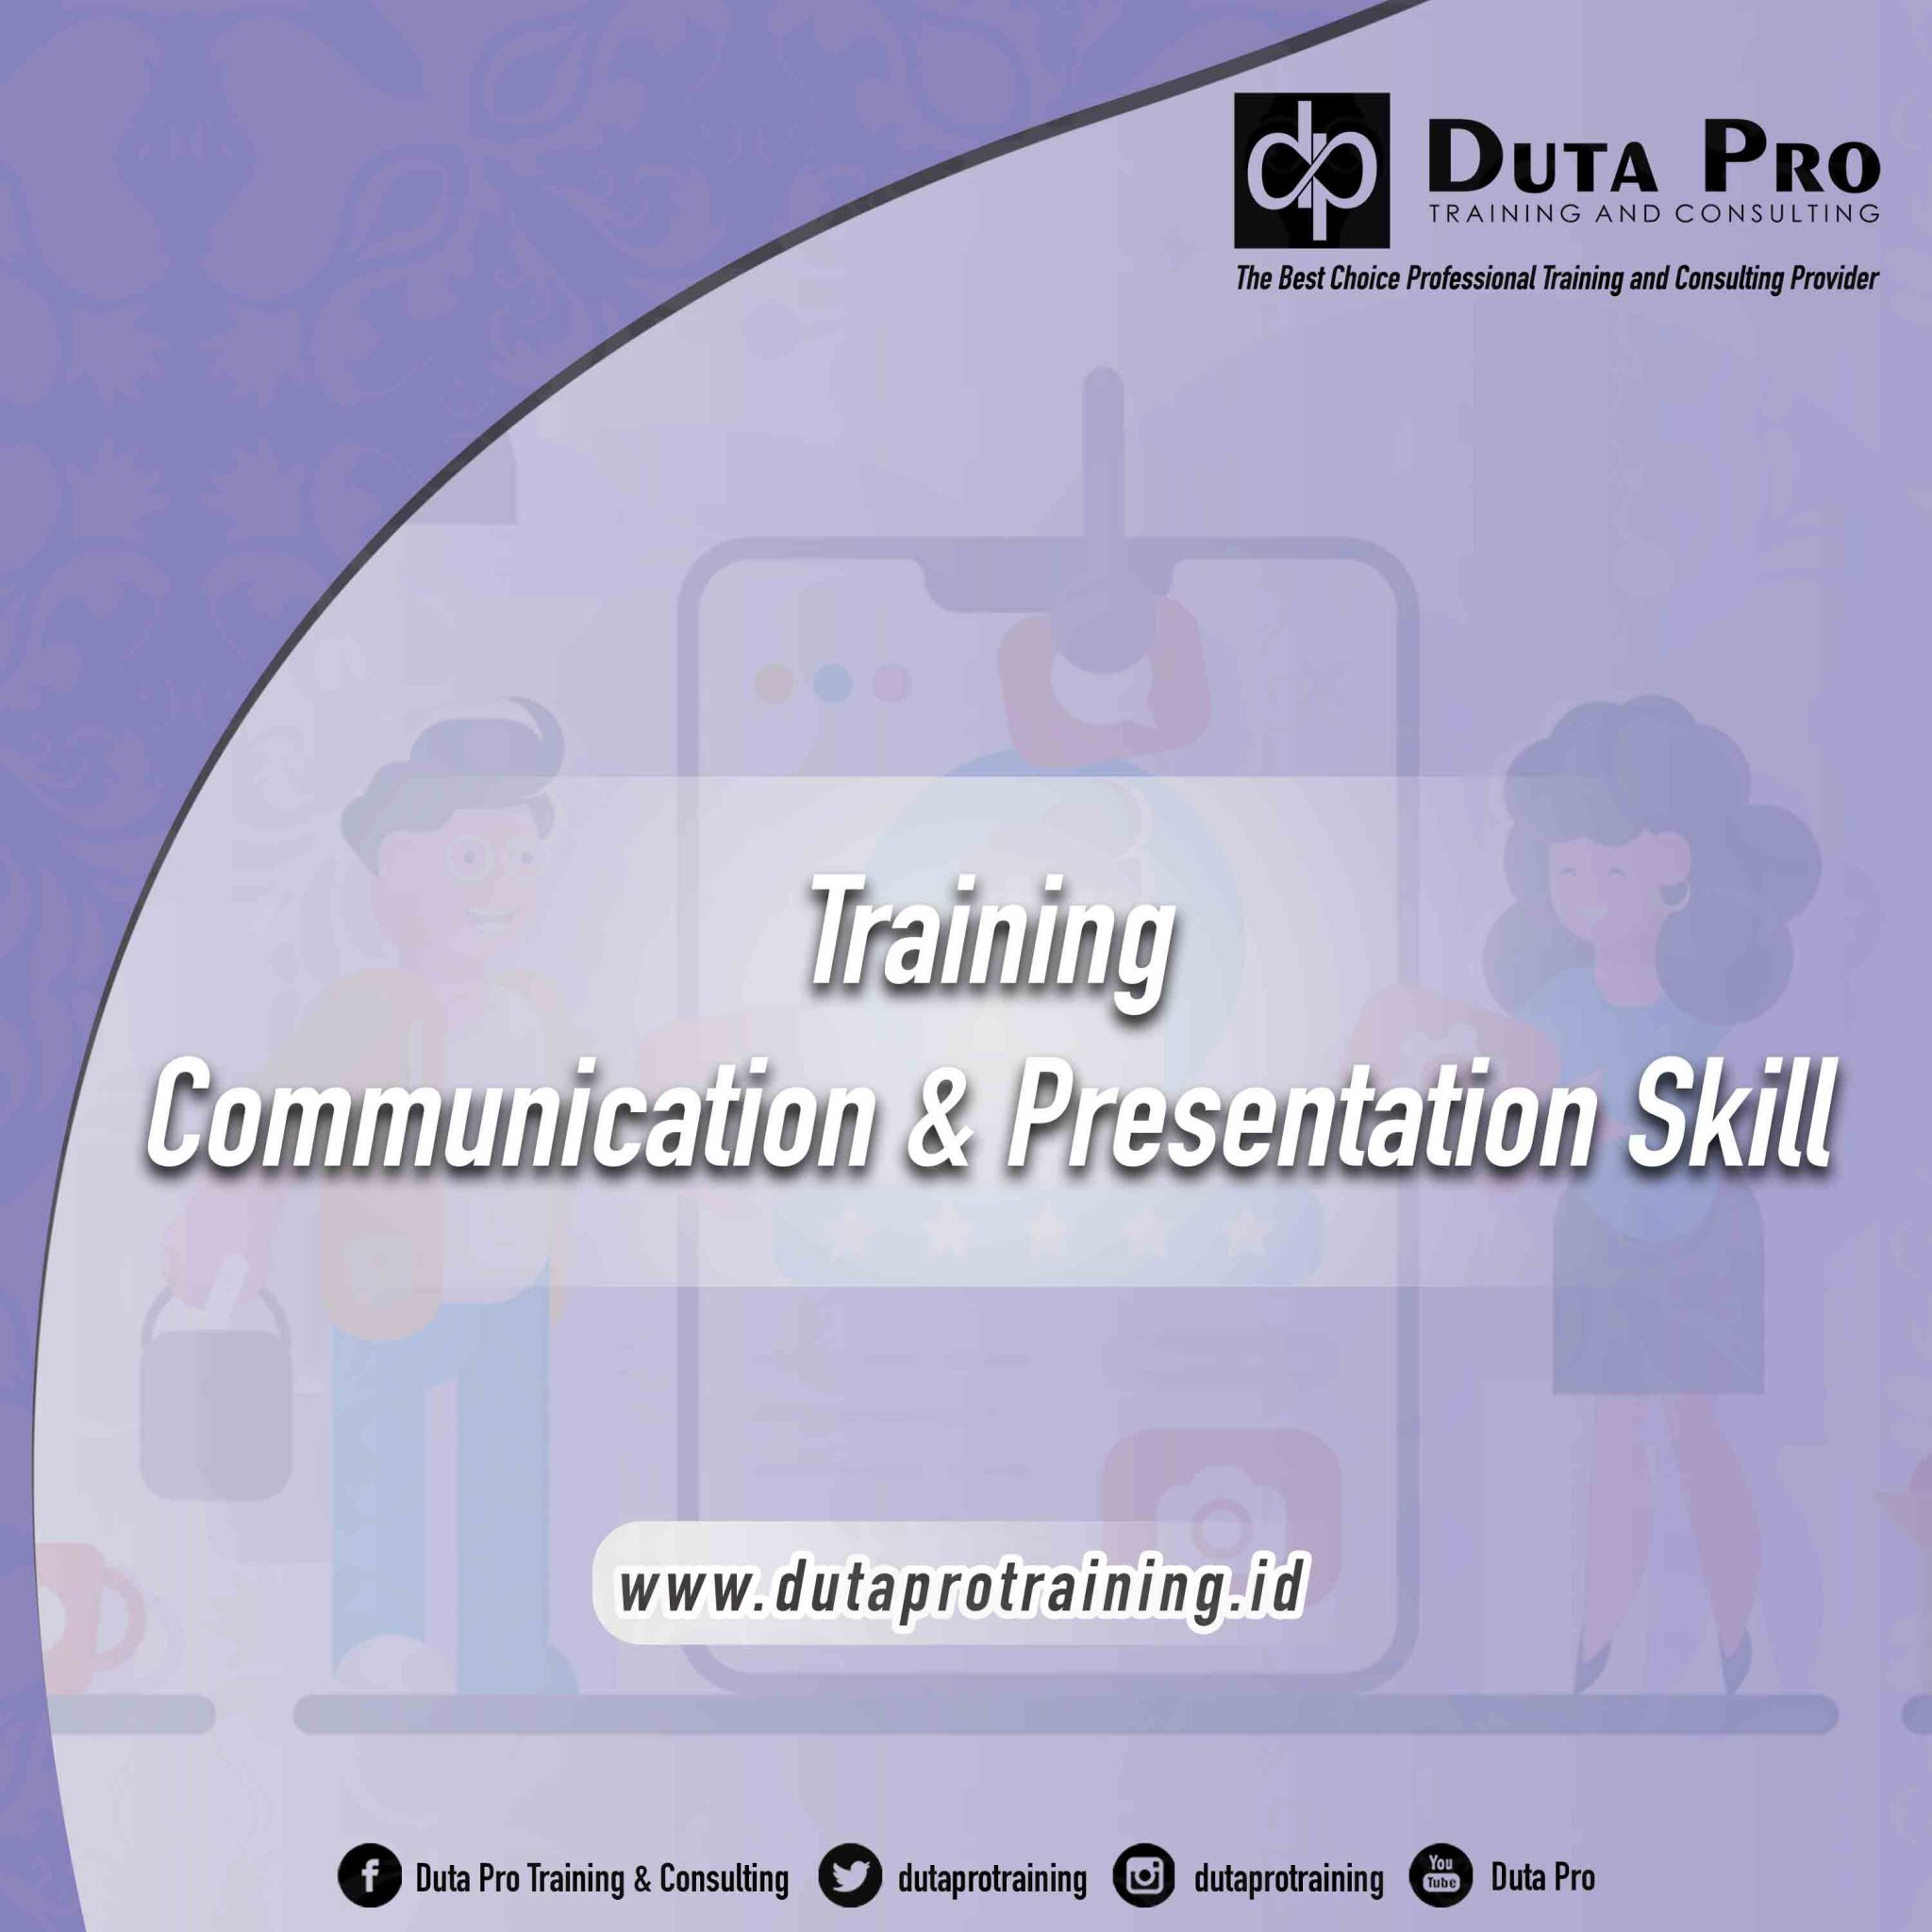 Training Communication & Presentation Skill